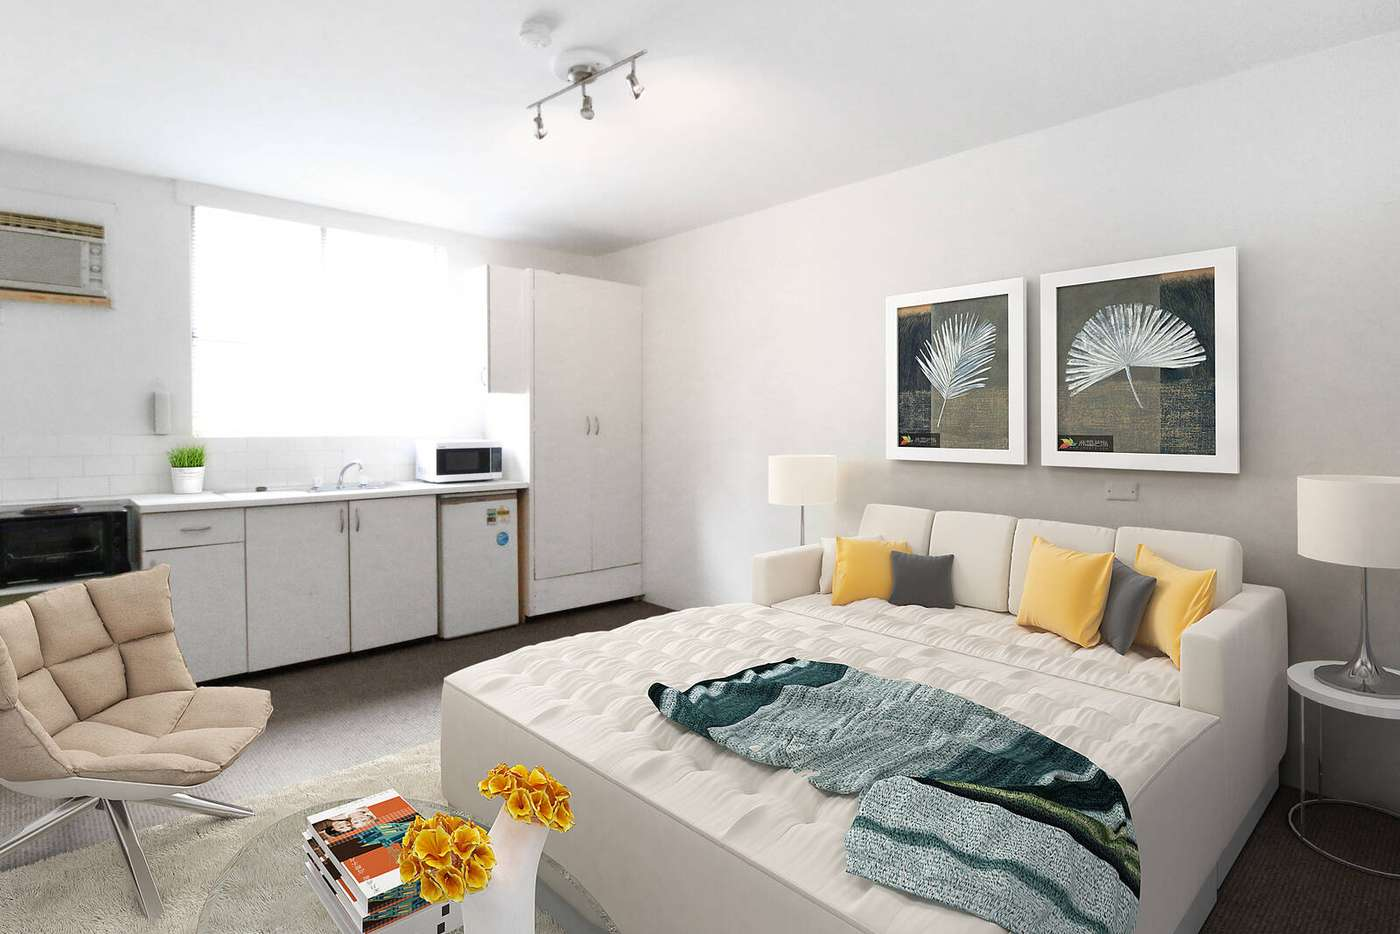 Main view of Homely studio listing, 26/595 Willoughby Road, Willoughby NSW 2068